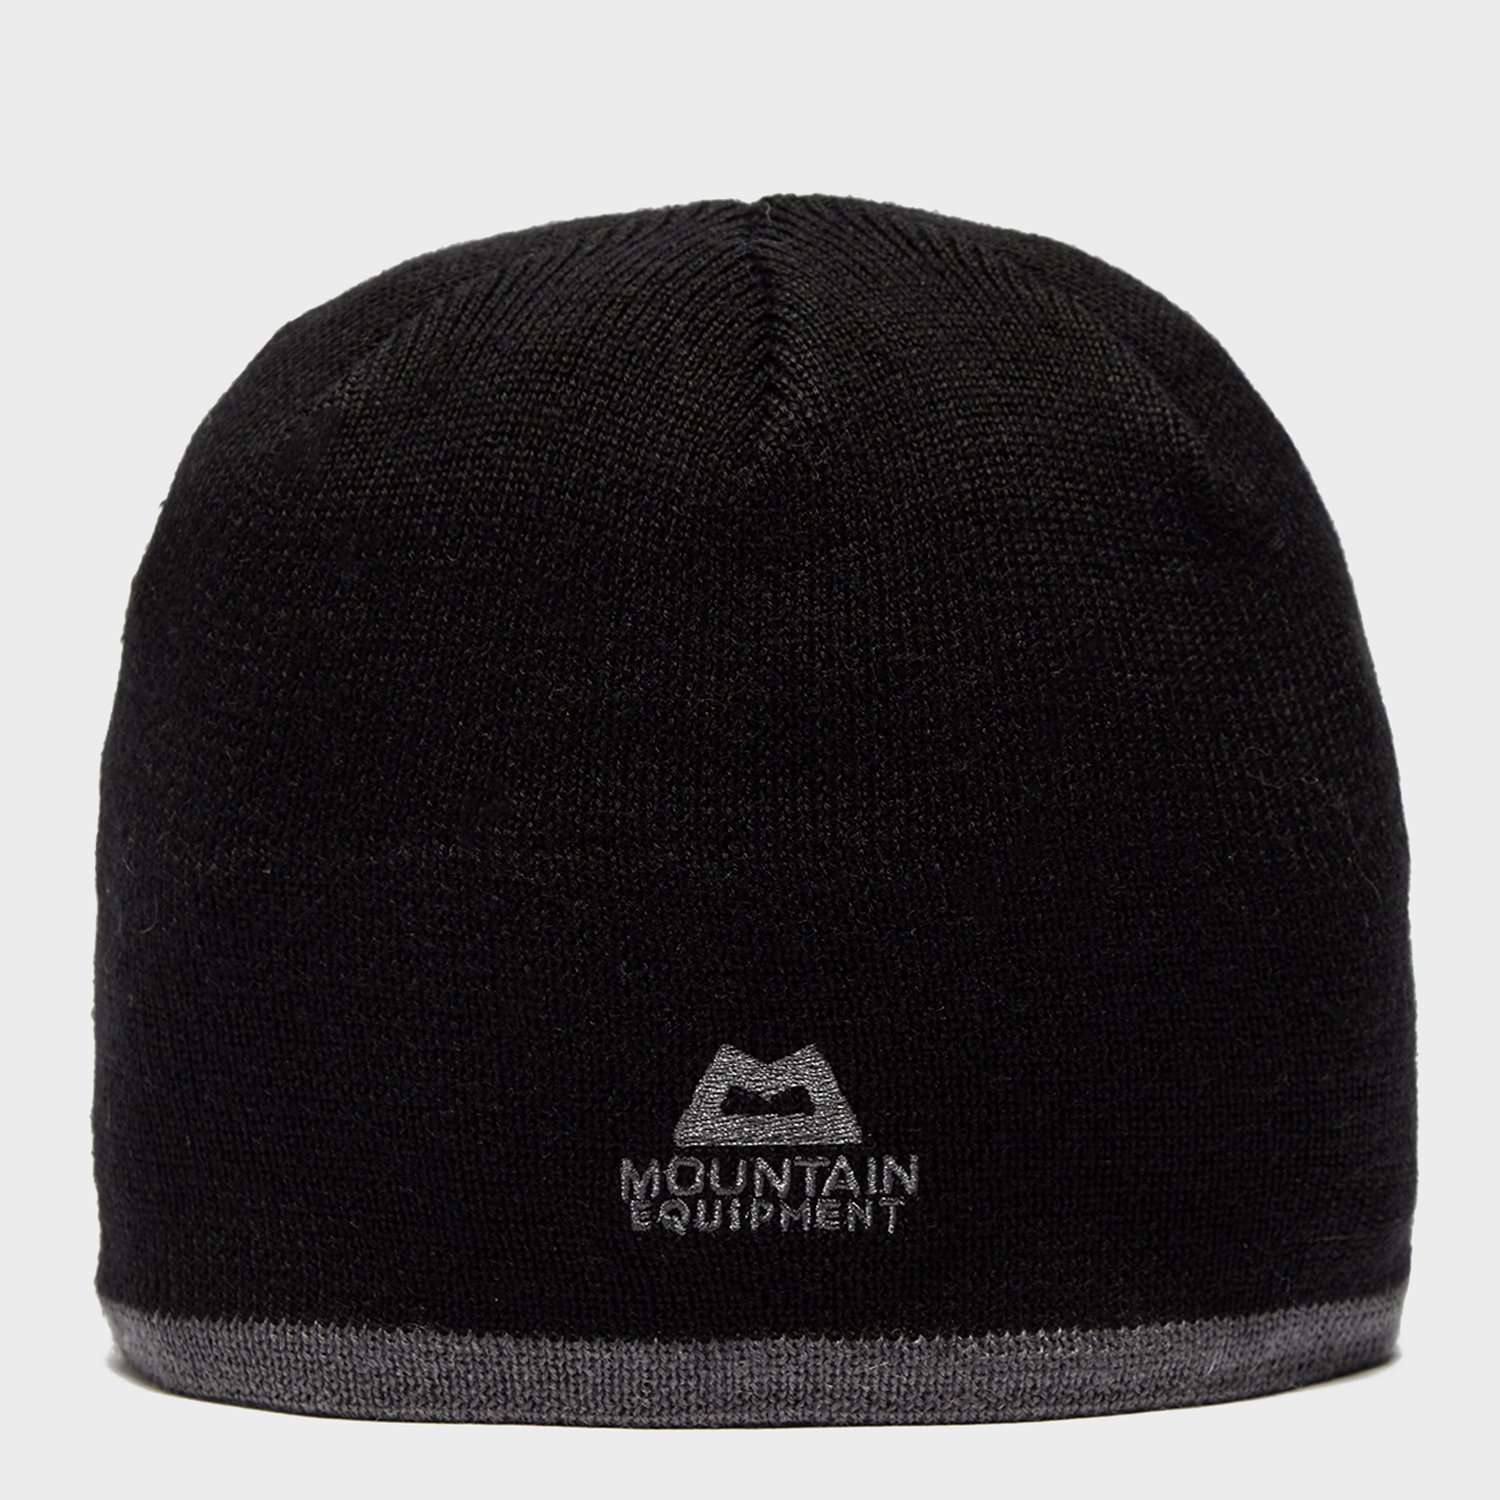 MOUNTAIN EQUIPMENT Knit Beanie